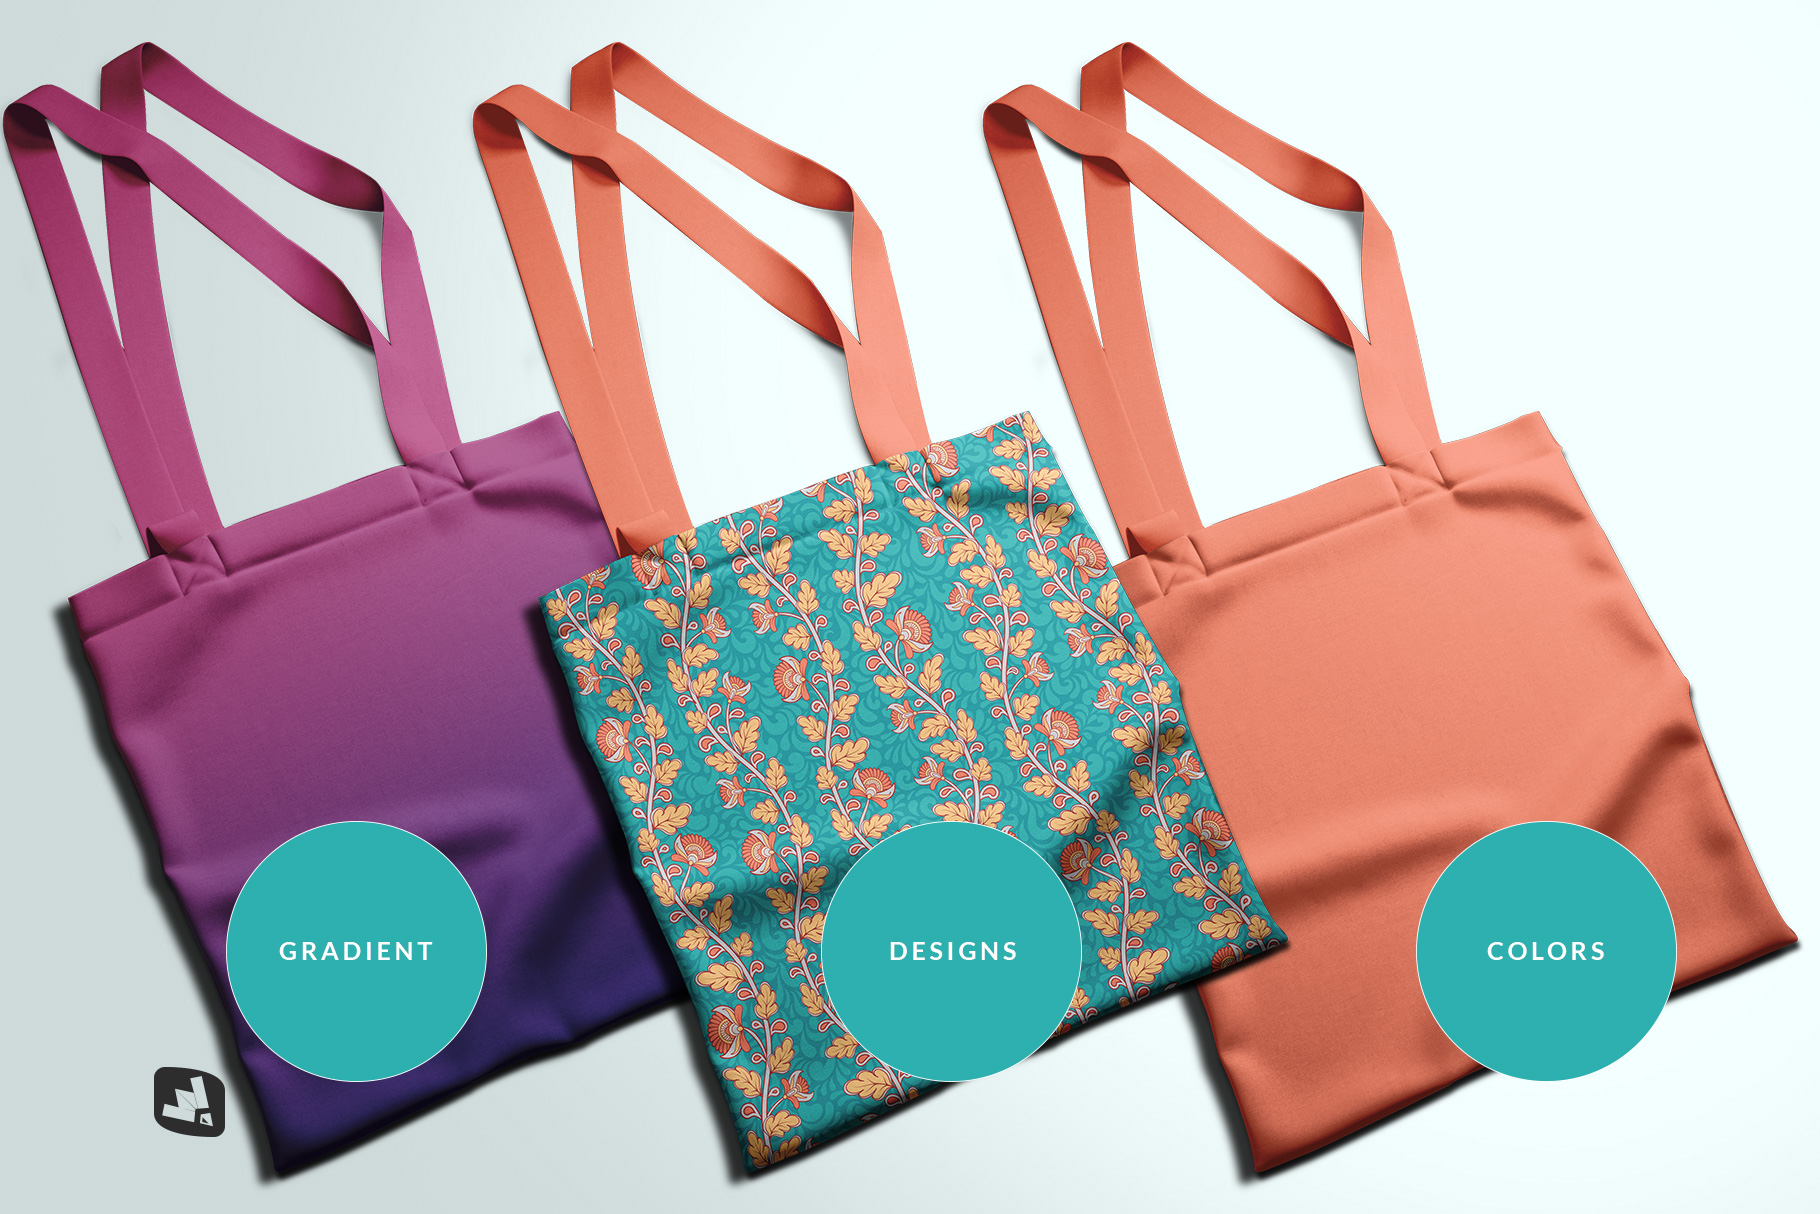 types of the topview reusable cotton bag mockup